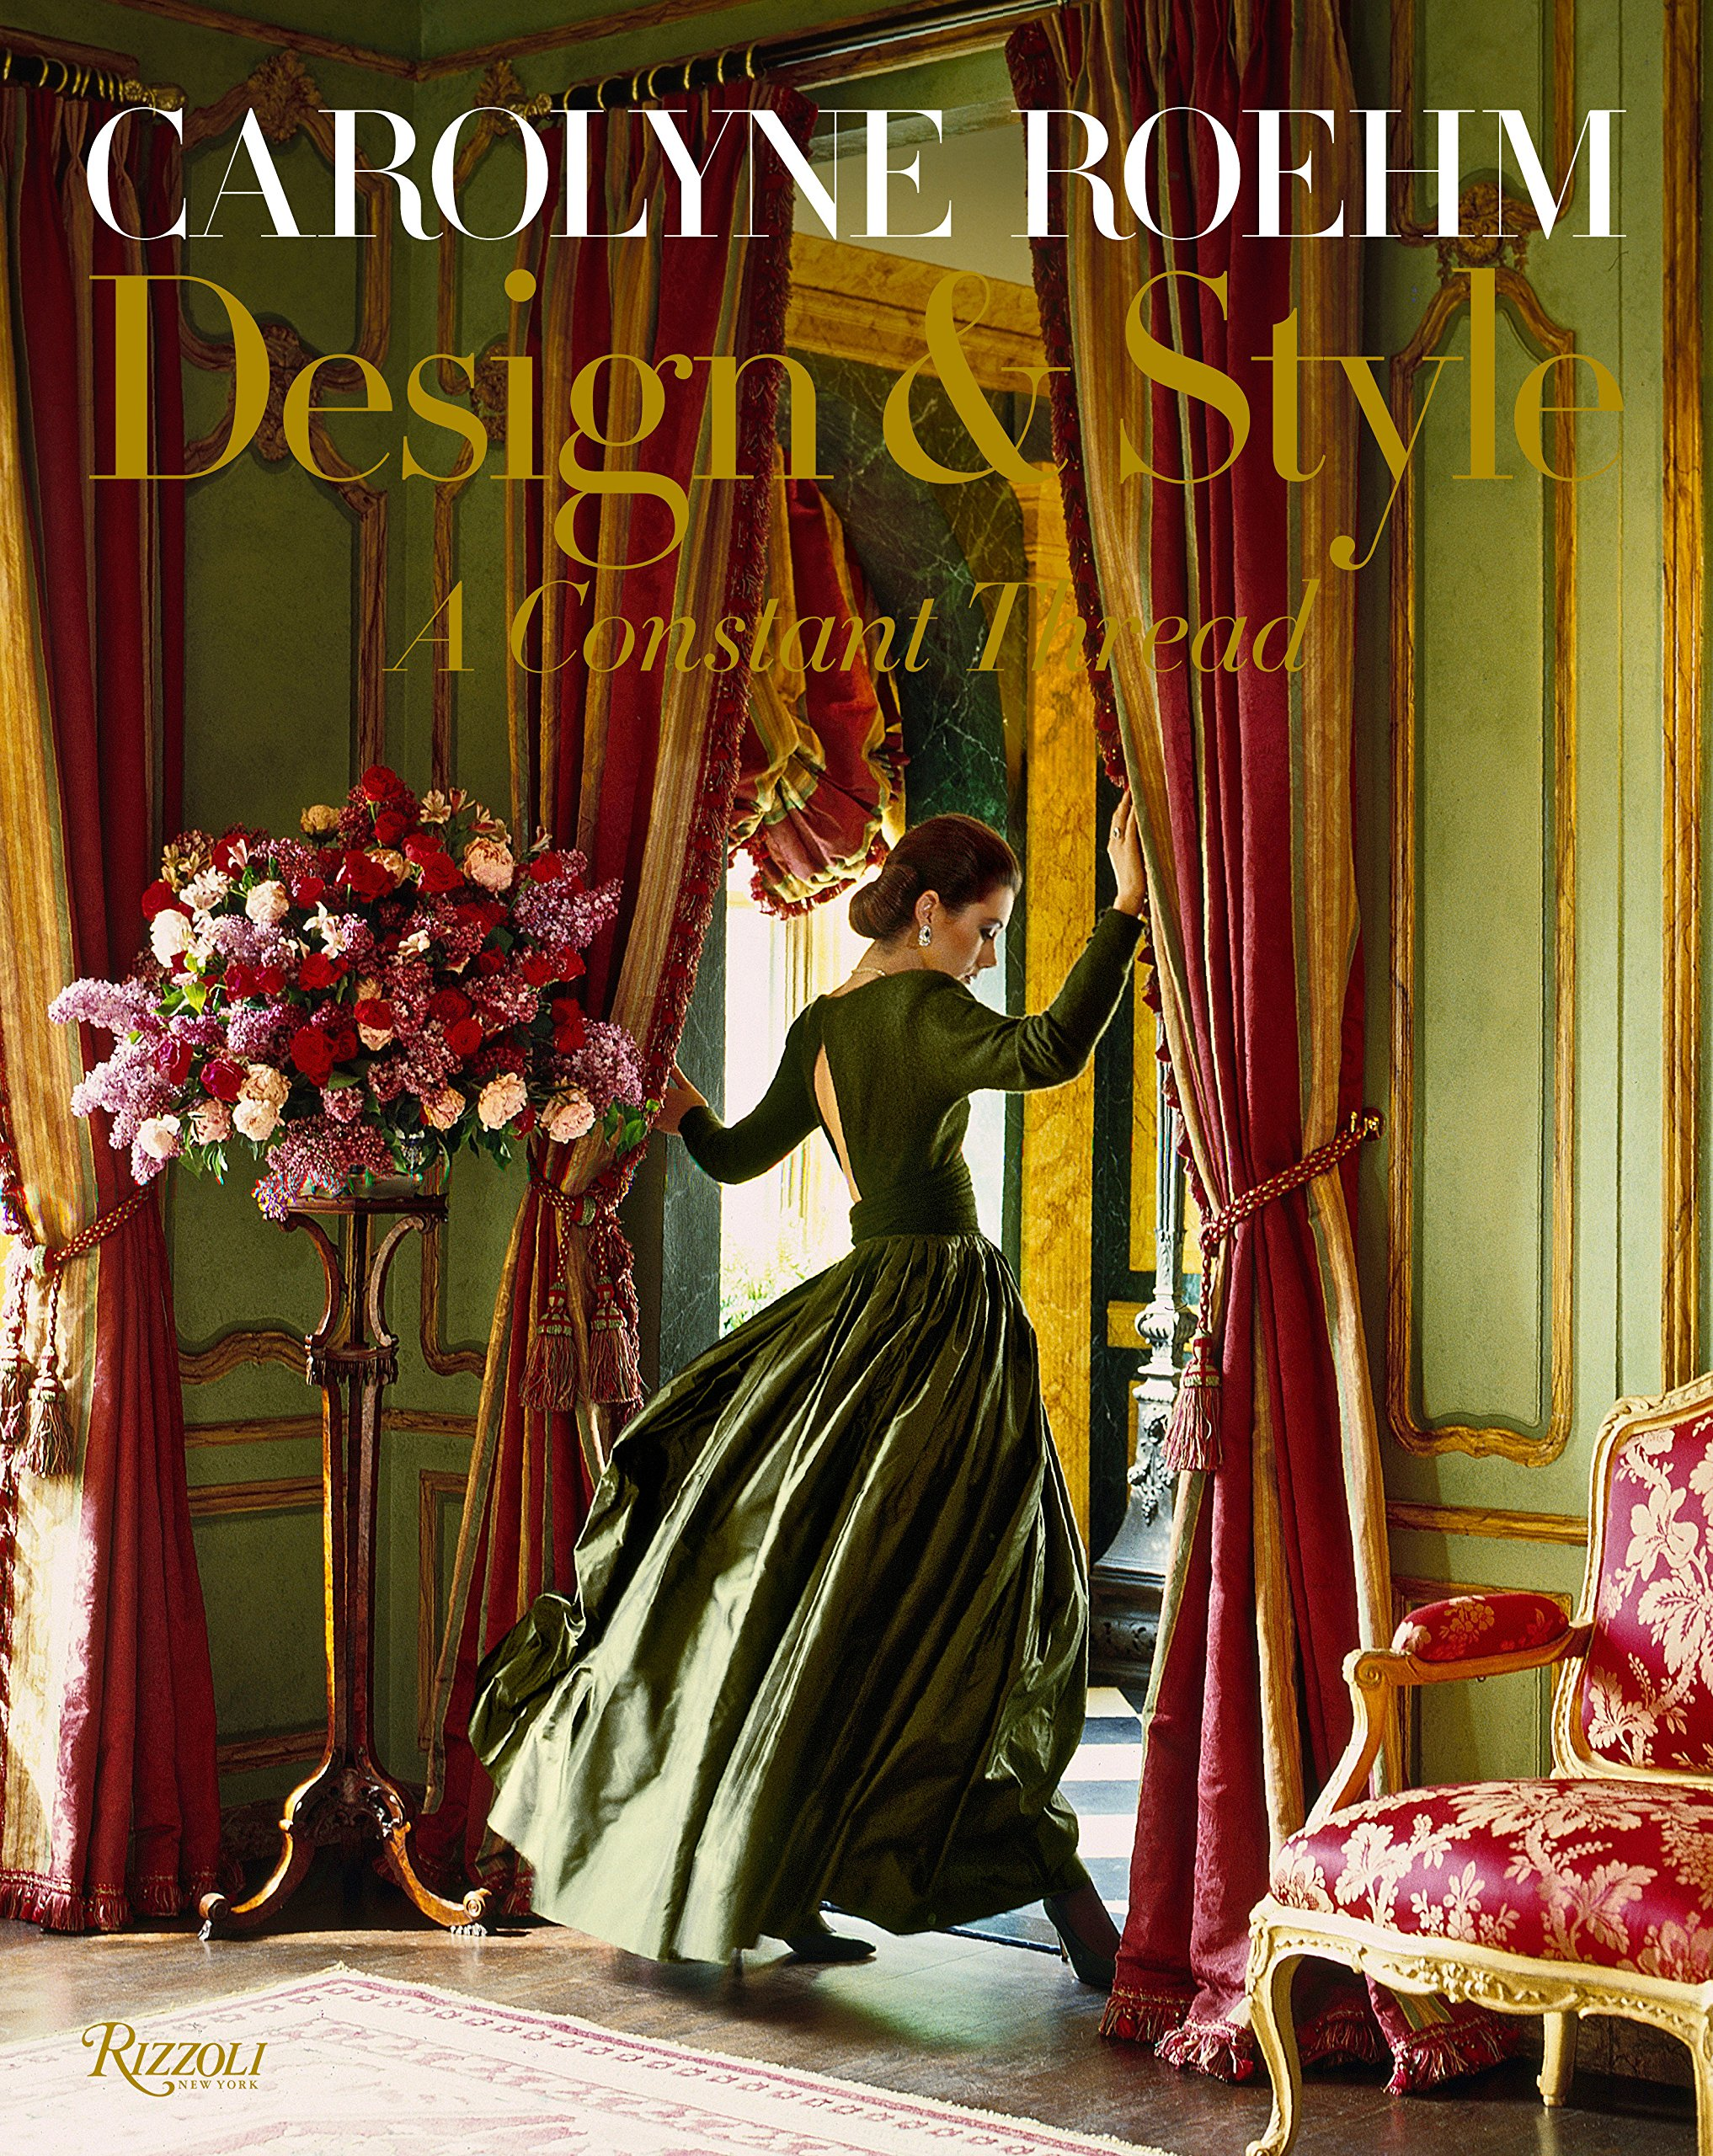 Design & Style: A Constant Thread by Carolyne Roehm Book